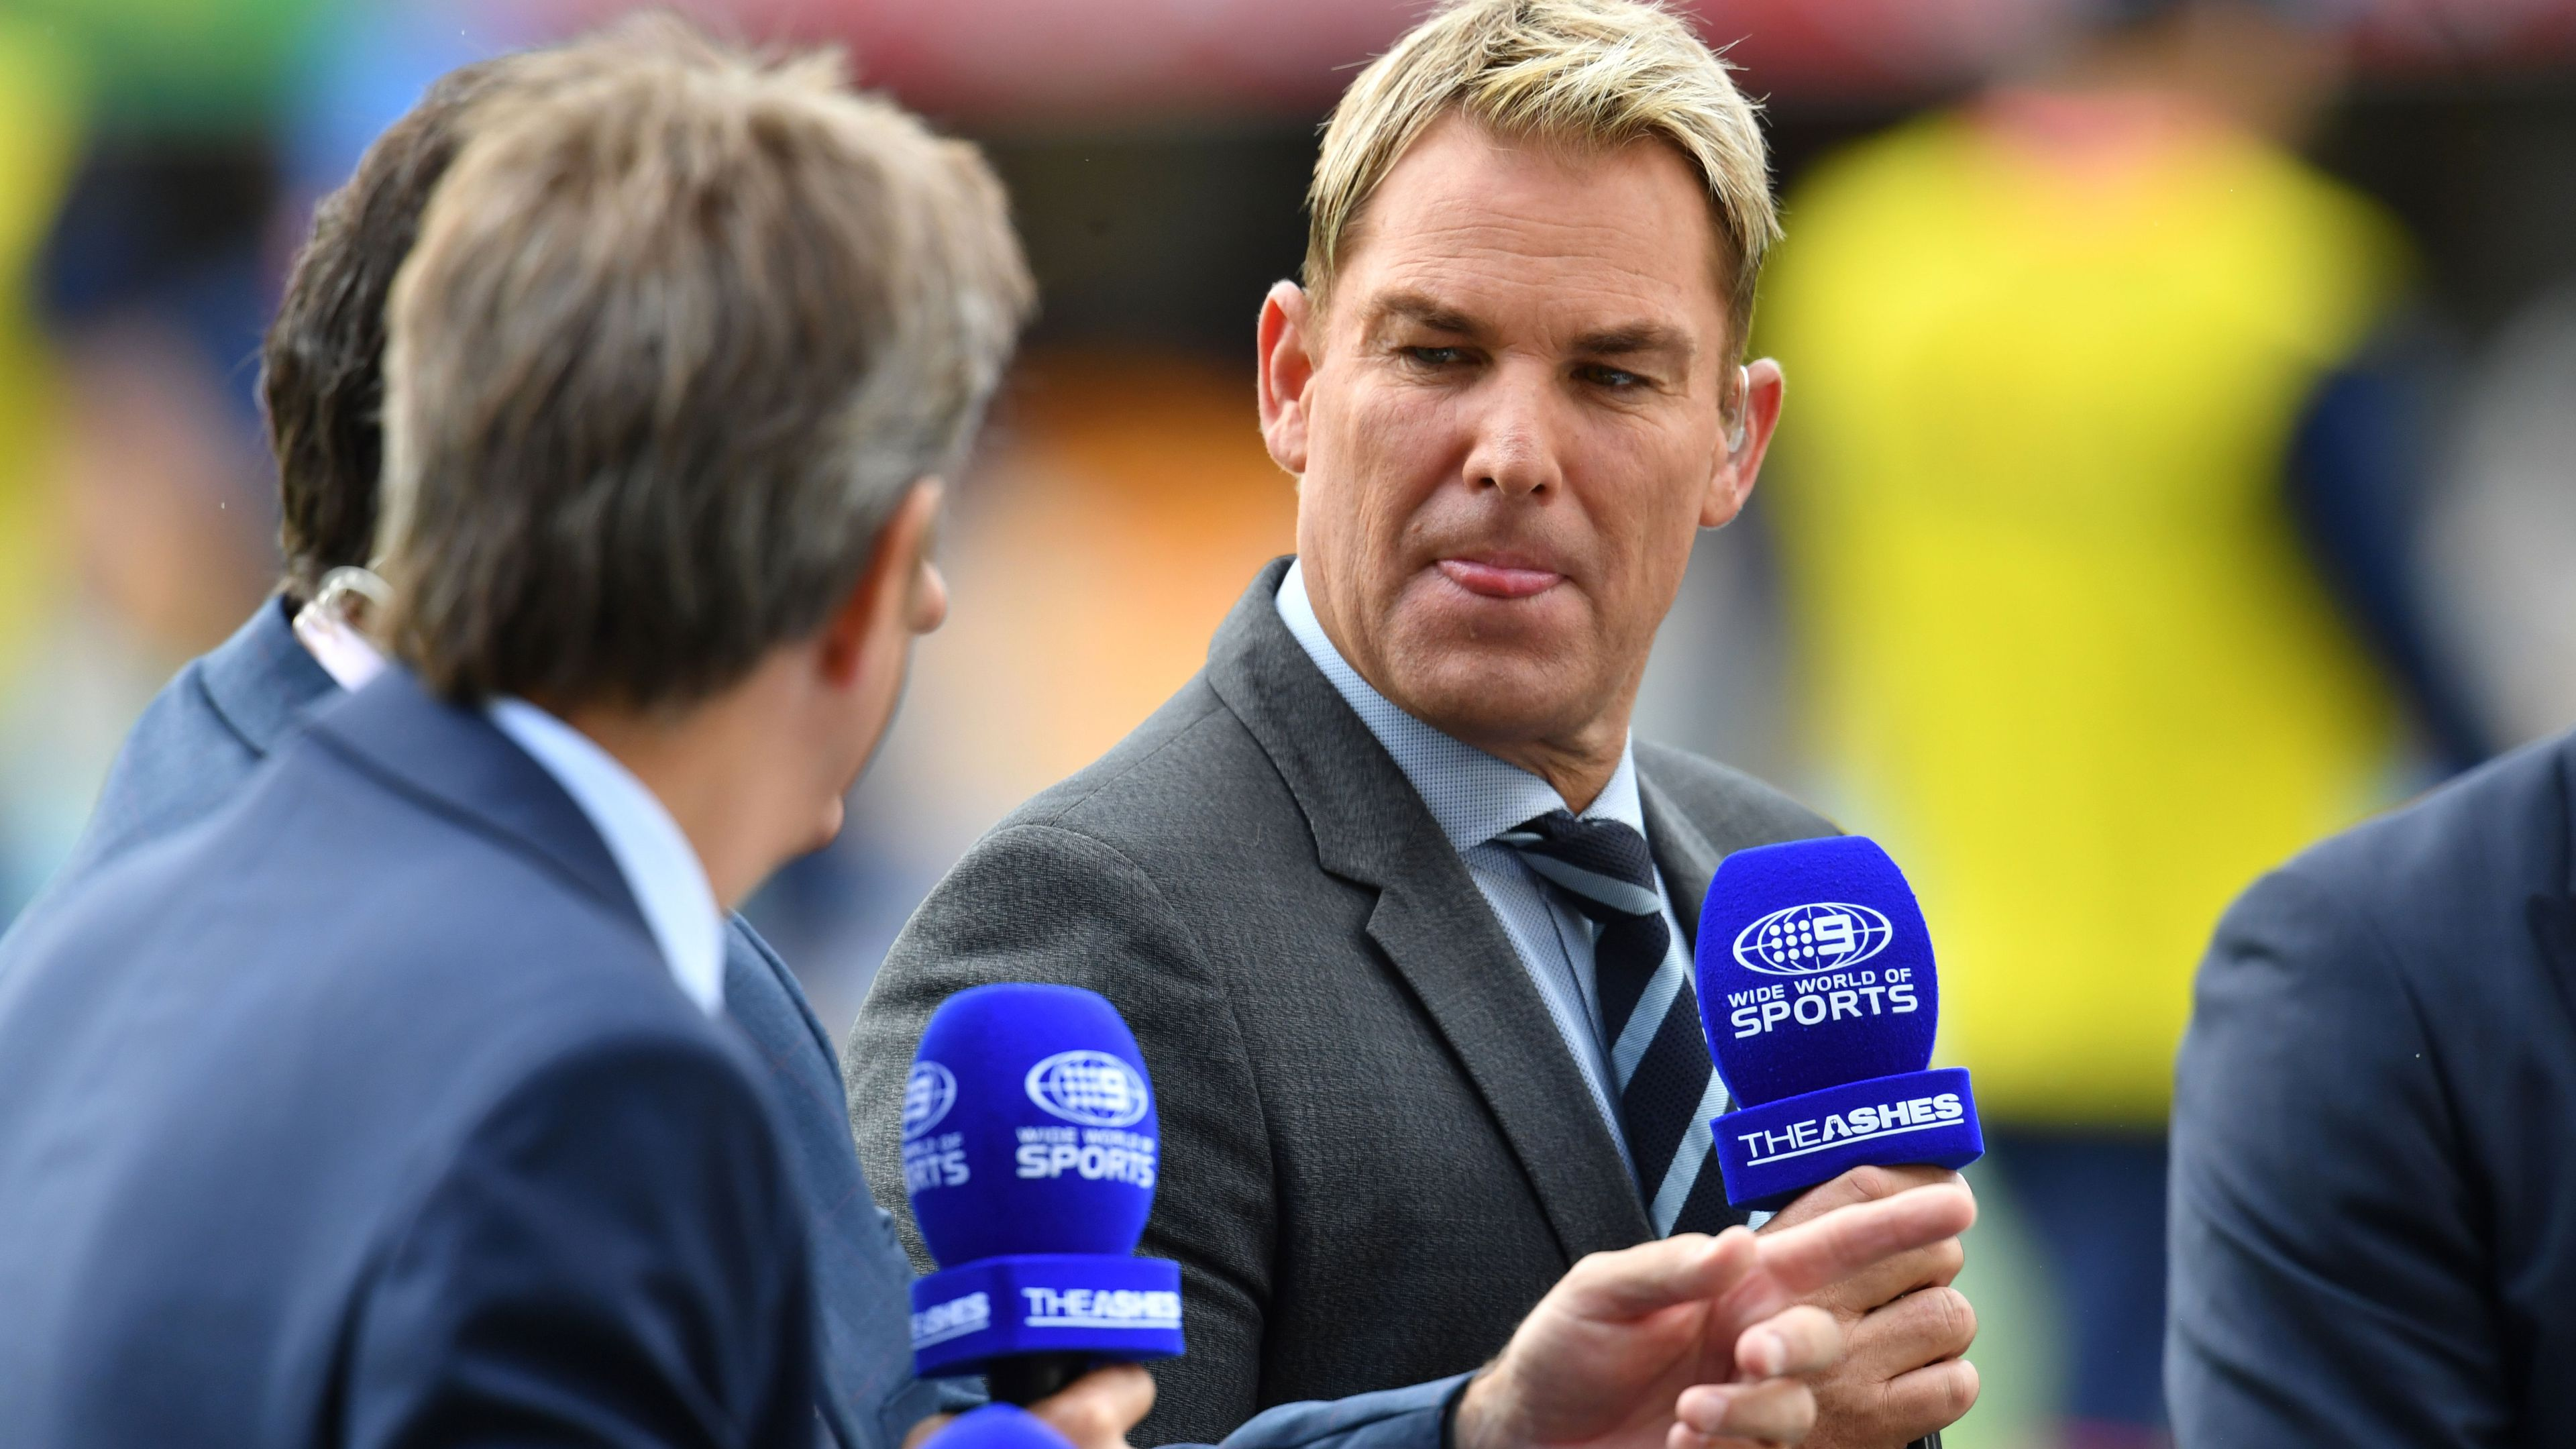 Shane Warne says heavy drinking led to poor 2005 Ashes performance not all night sex session